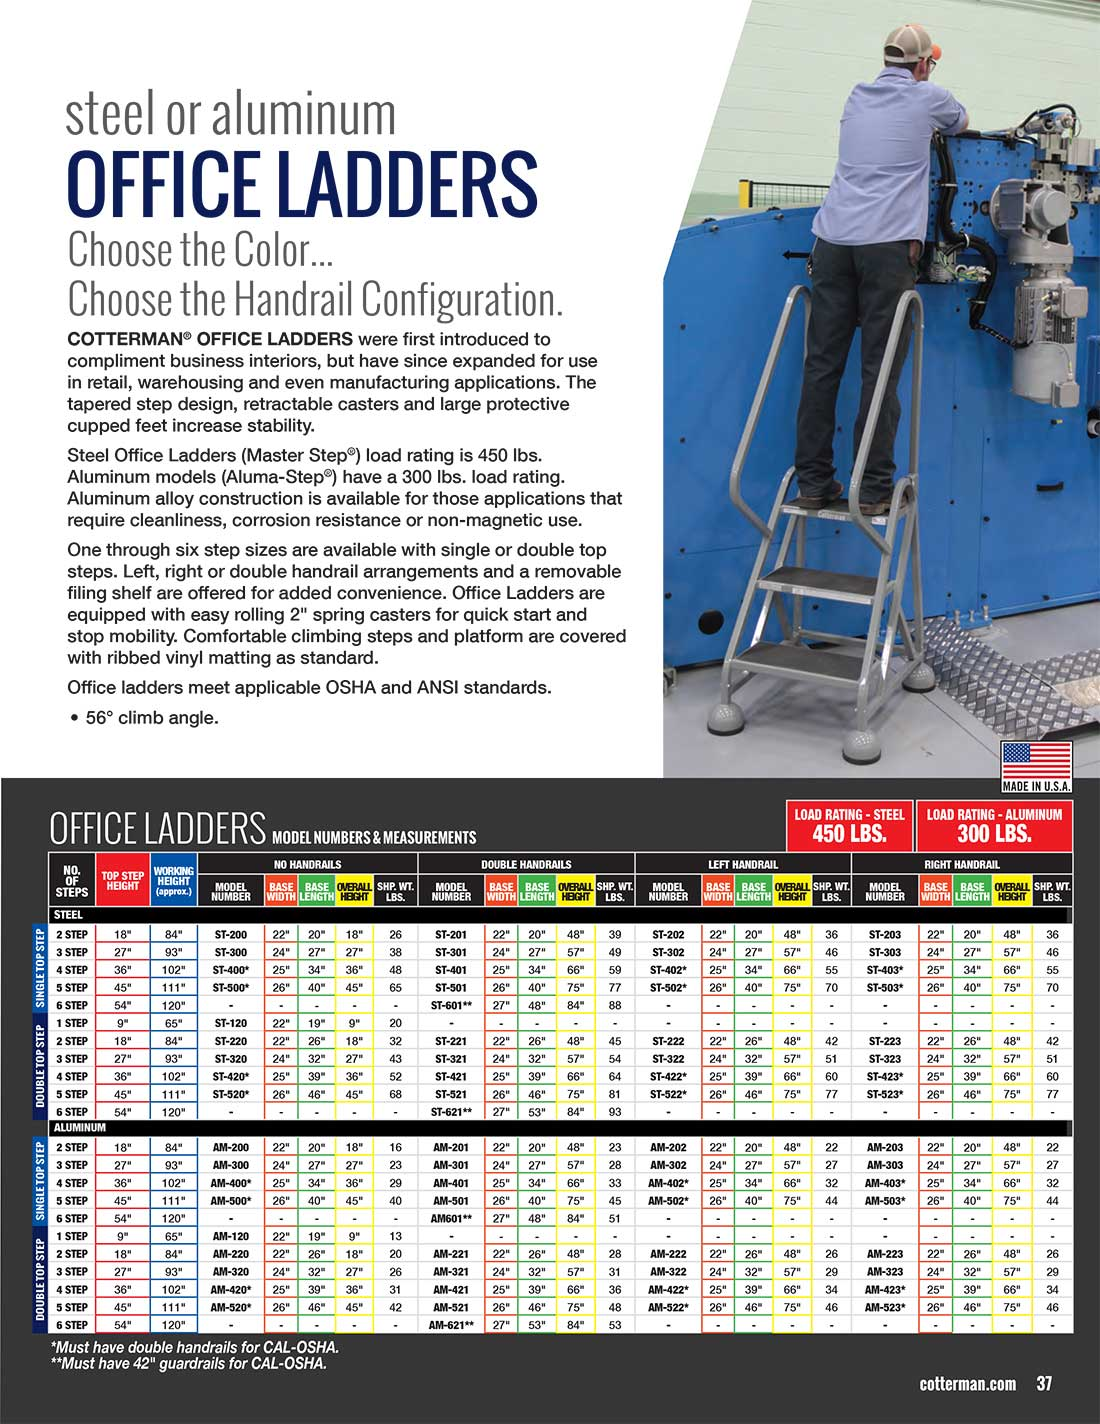 Cotterman Office Ladder Technical Specs